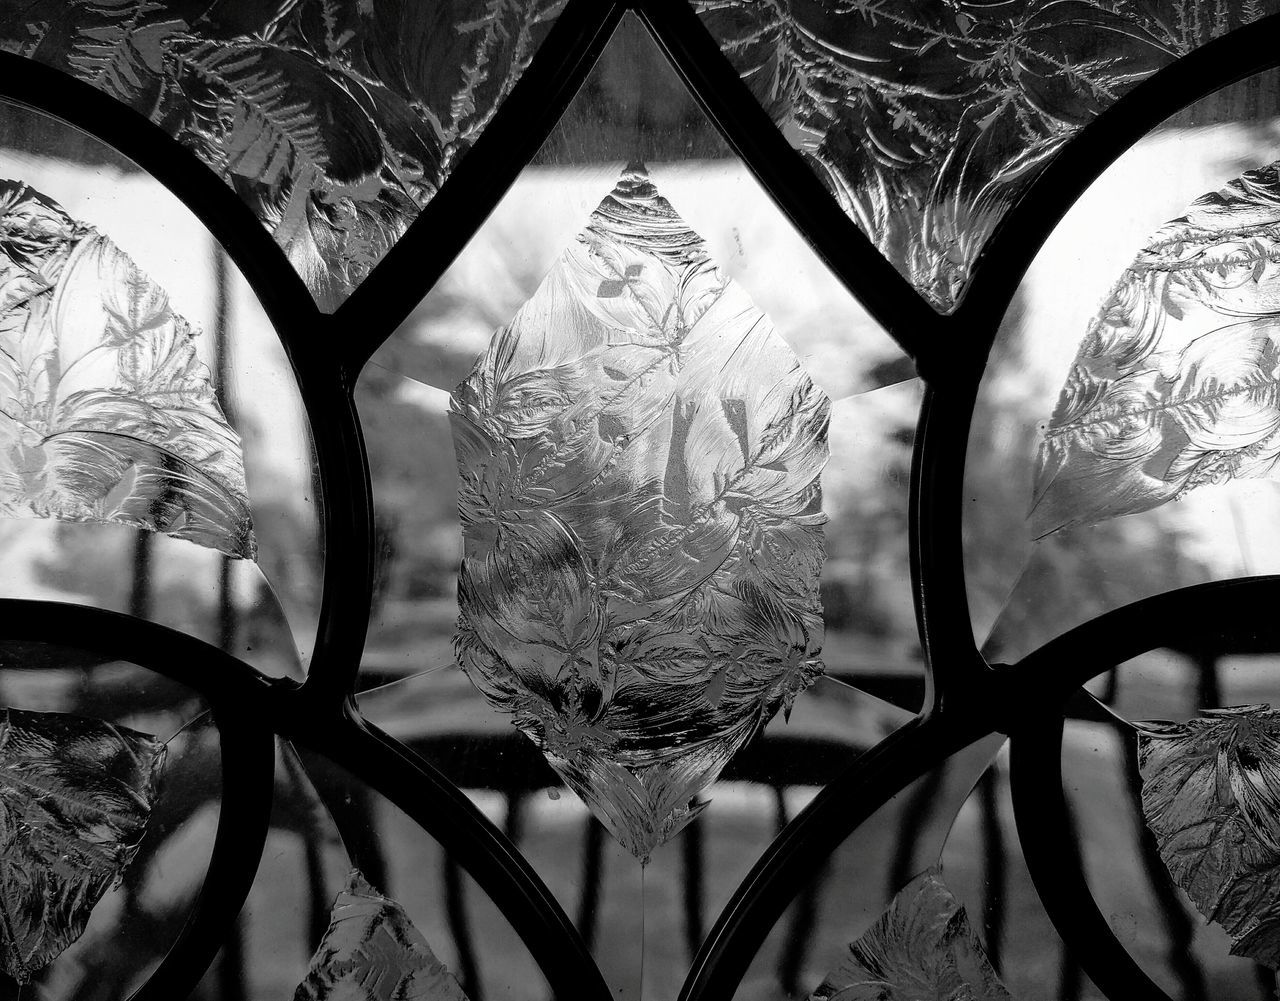 through the etched glass door Taking Photos Let's Do It Chic! Decorative Textures And Surfaces Eyemphotography Smart Complexity My Photography Etched Glass Bnw_collection Blavk And White EyeEm Bnw No People Respect For The Good Taste EyeEm Gallery Stillife Photographic Memory Pattern Pieces